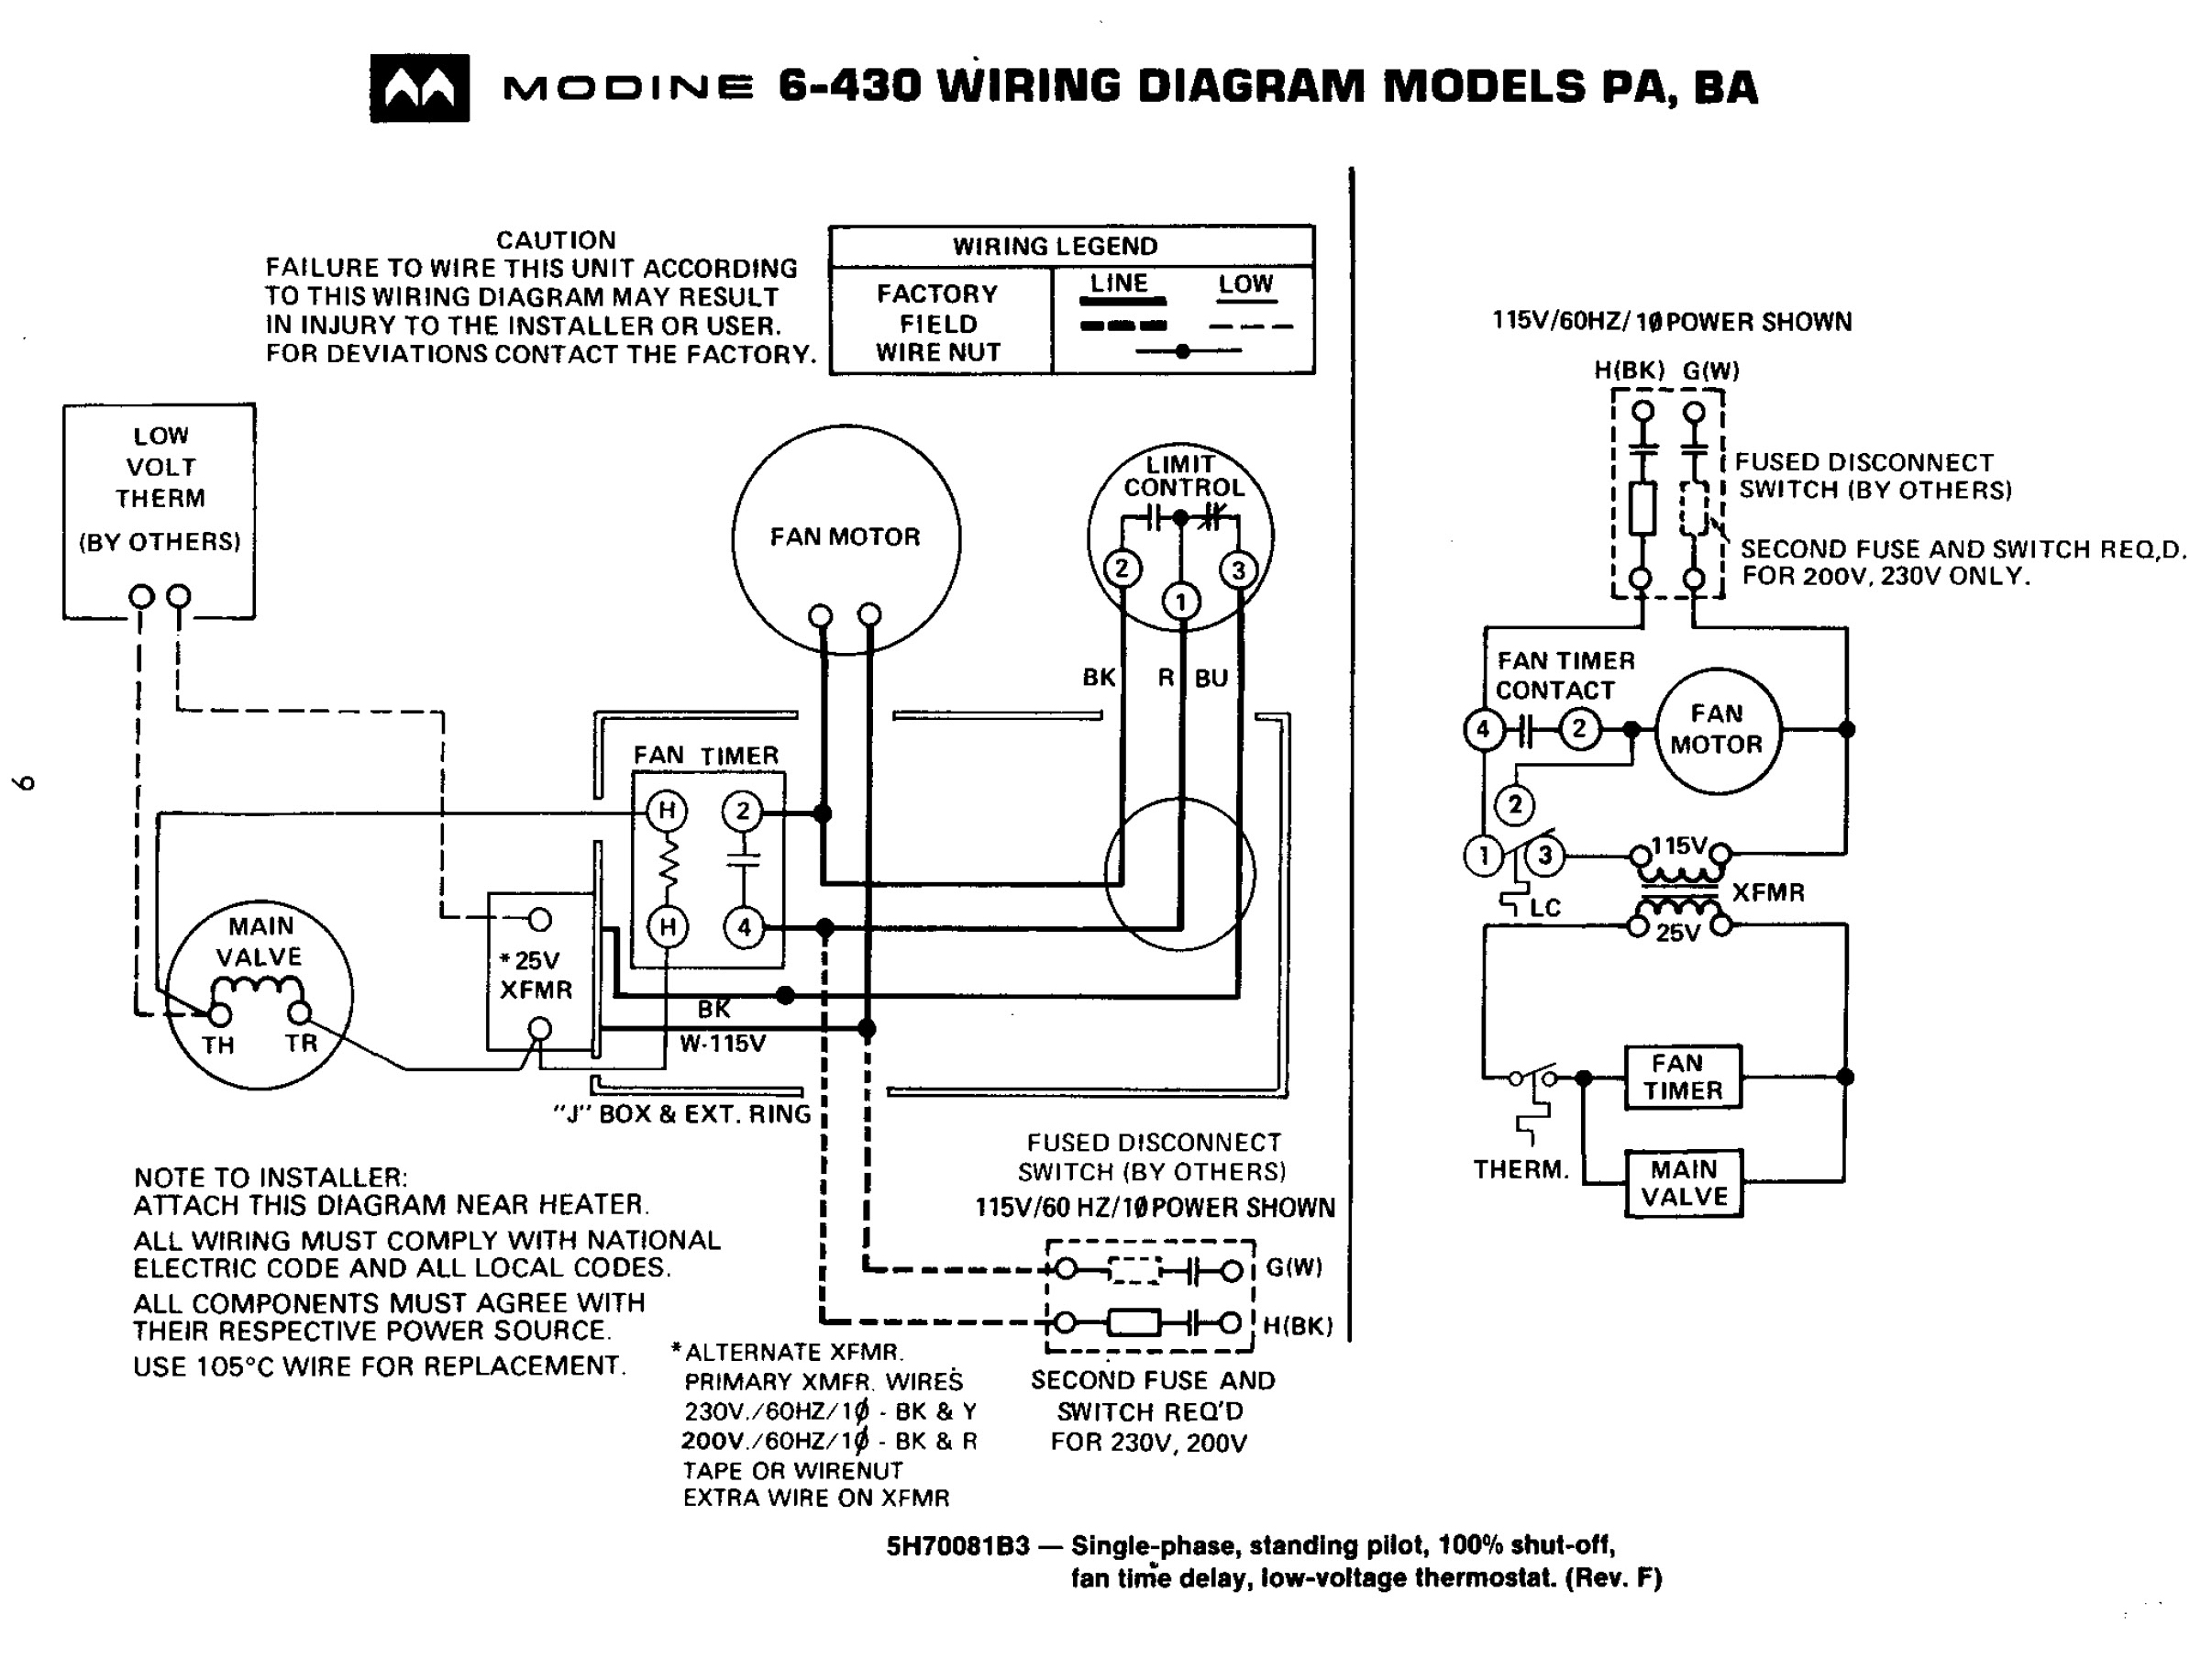 modine unit heater wiring diagram Collection-Heater Wiring Diagram Wiring Diagram Water Heater Timer Wiring Modine Gas Heater Wiring Diagram Elegant 7-j